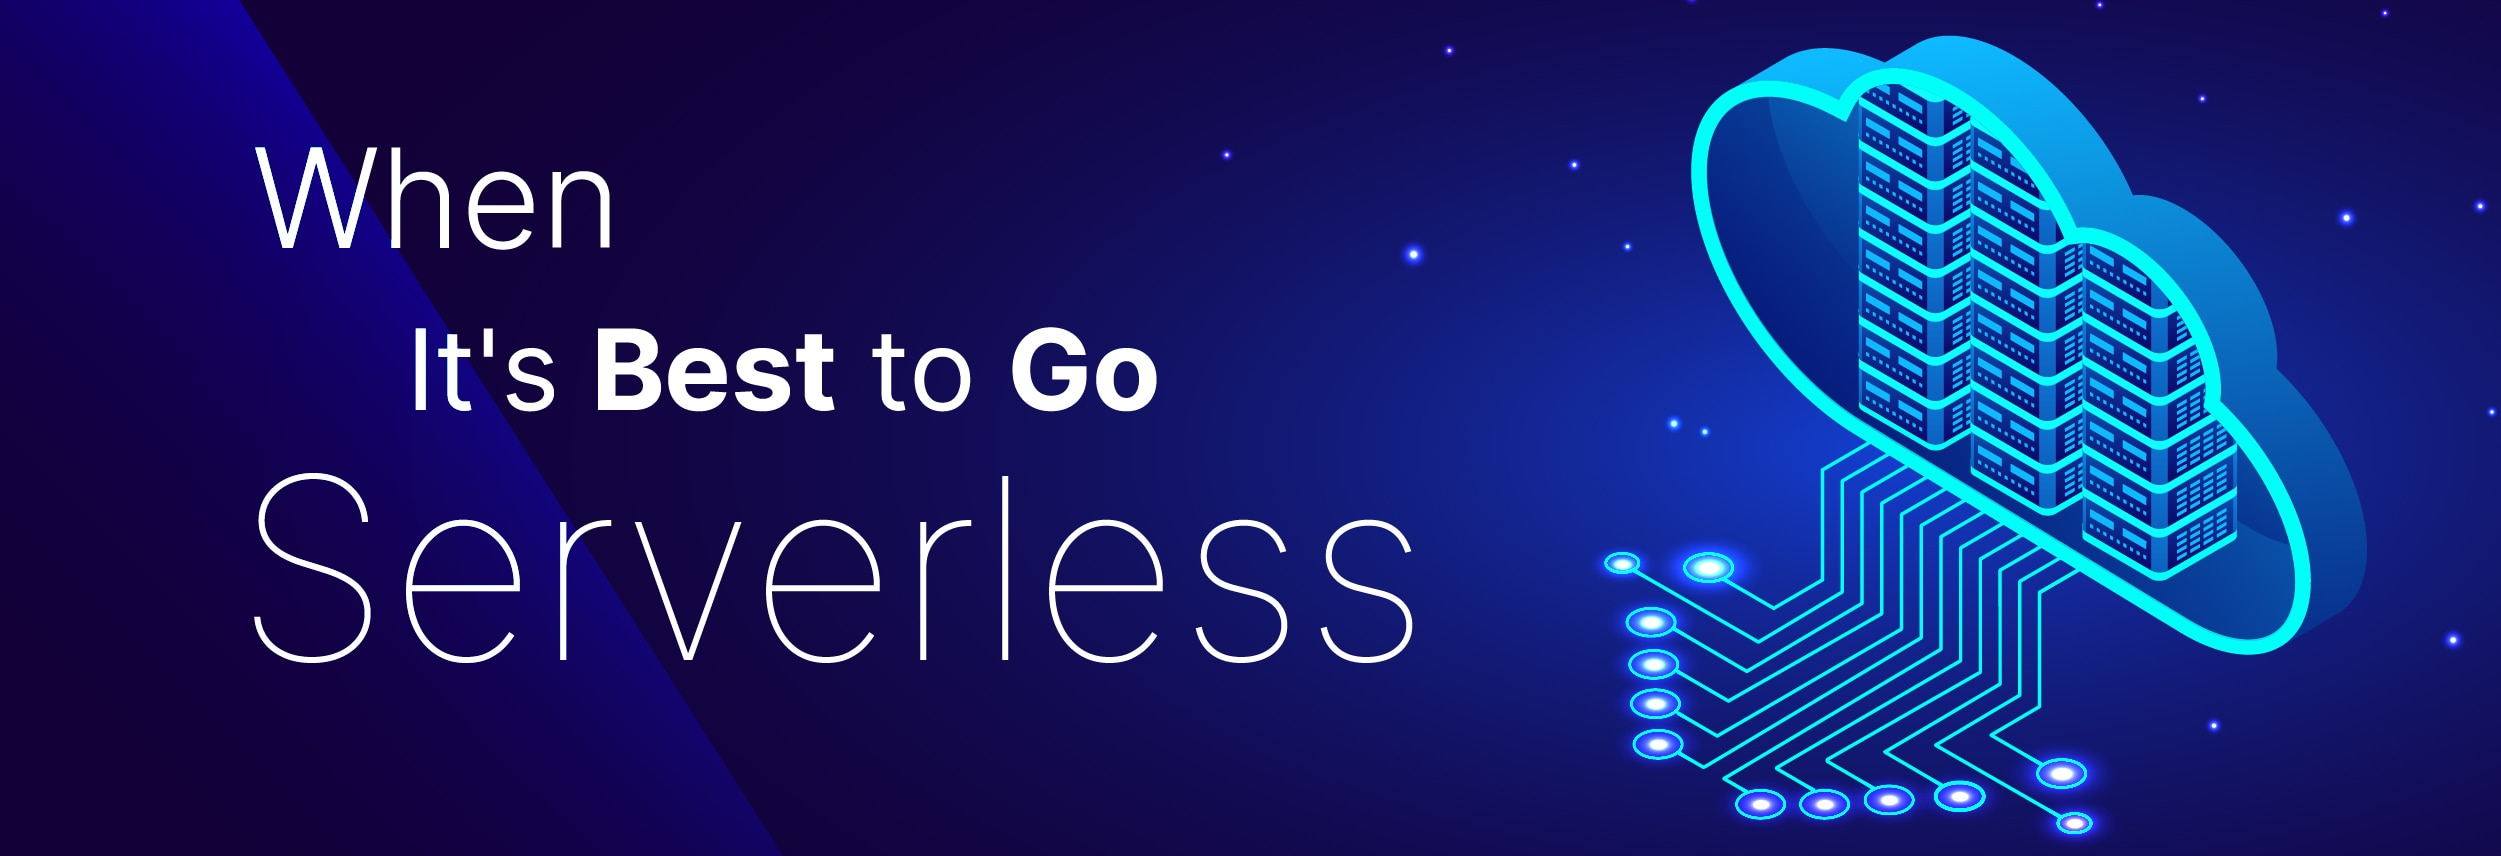 When It's Best to Go Serverless